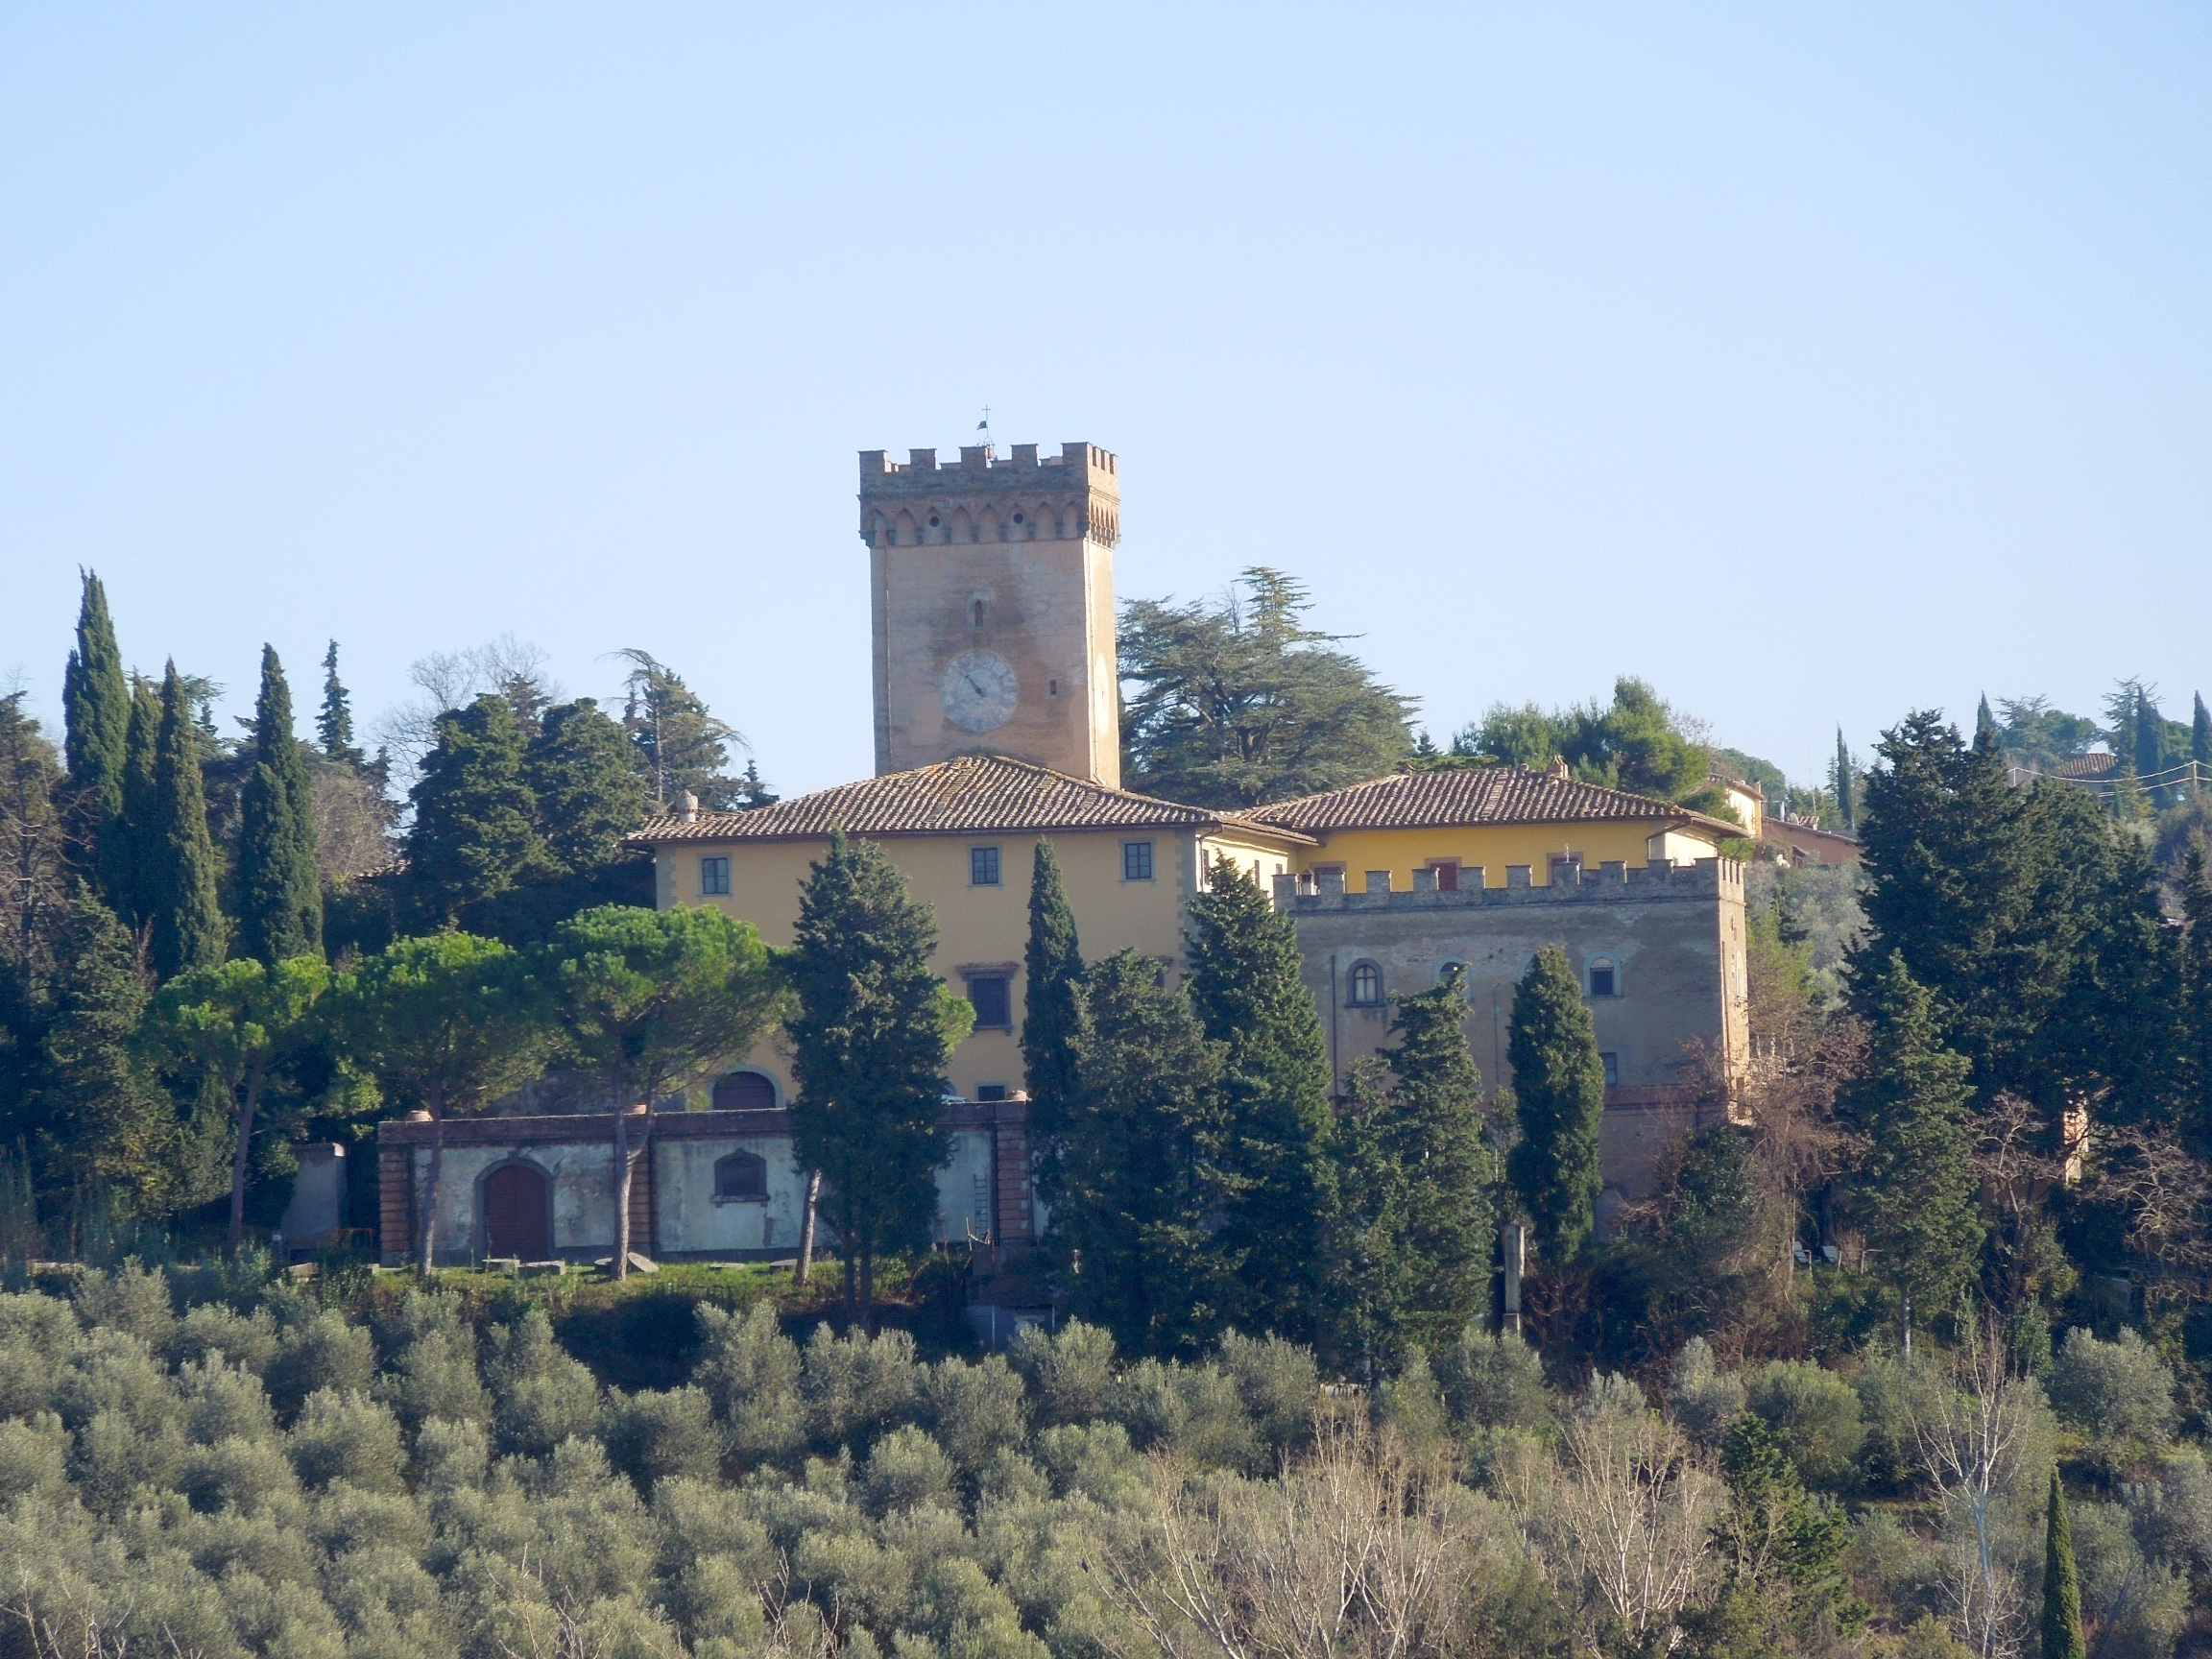 Castello di Alliano [Photo Credits: http://www.toscanaebike.com/]